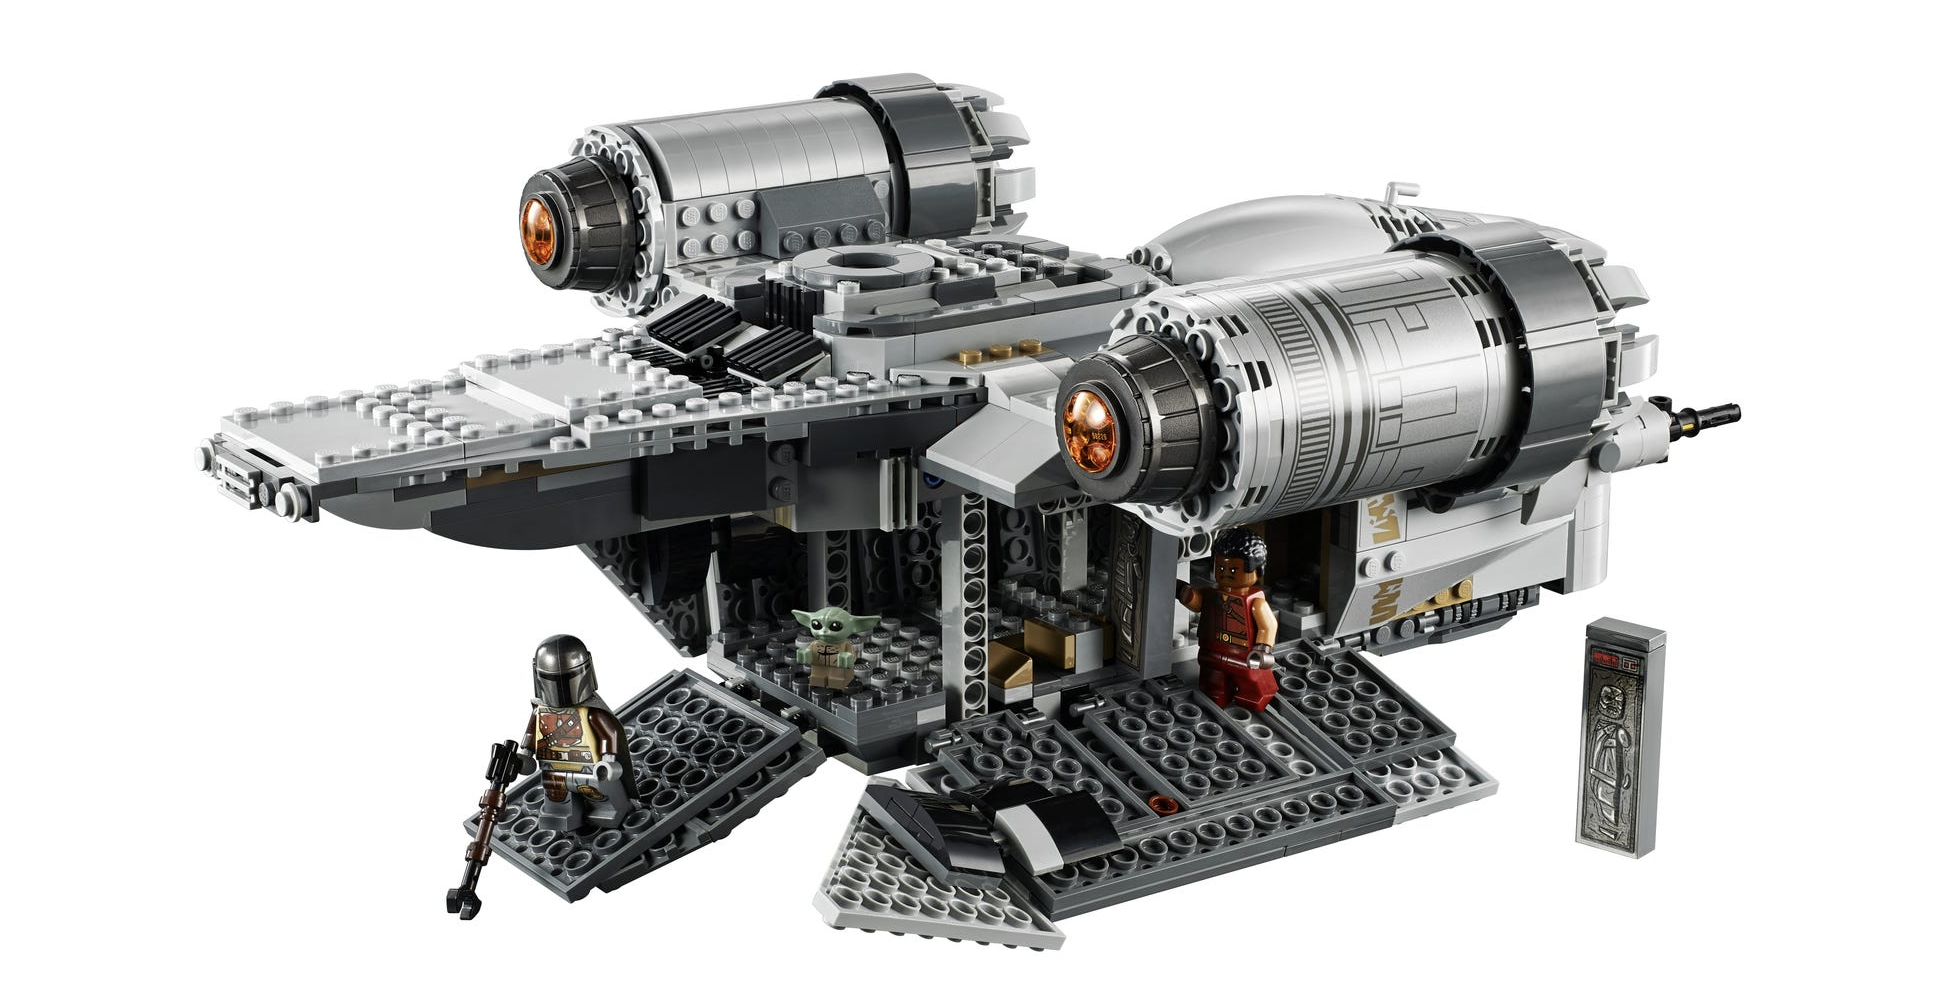 Star Wars Lego Version Of The Mandalorian Ship How To Get It